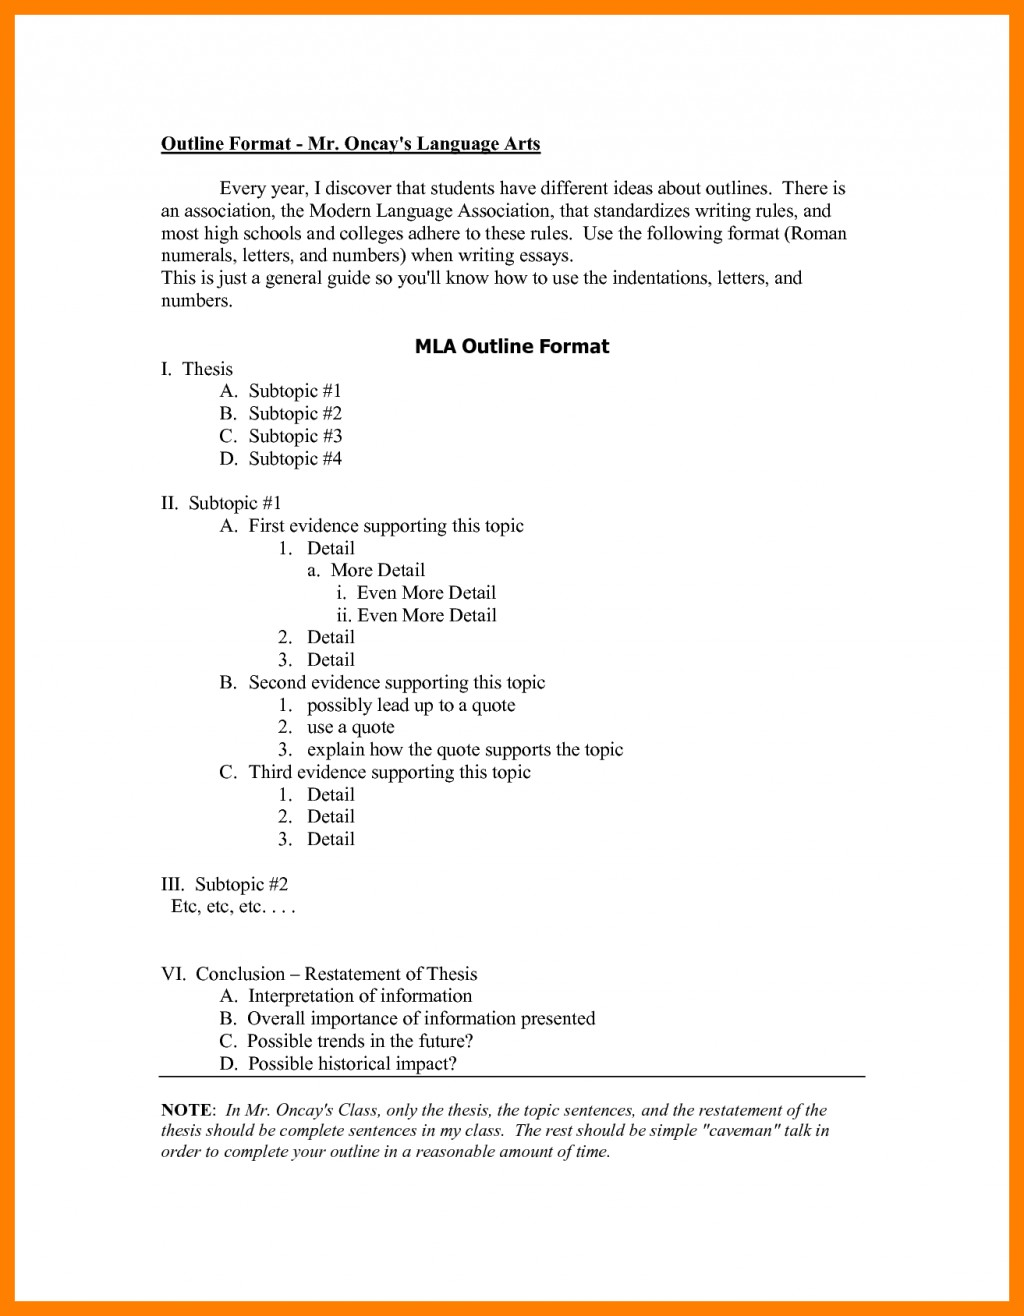 020 High School Outline Format Mla Research Paper Example Of Examples Stupendous Apa Unique Ideas For Guidelines Large